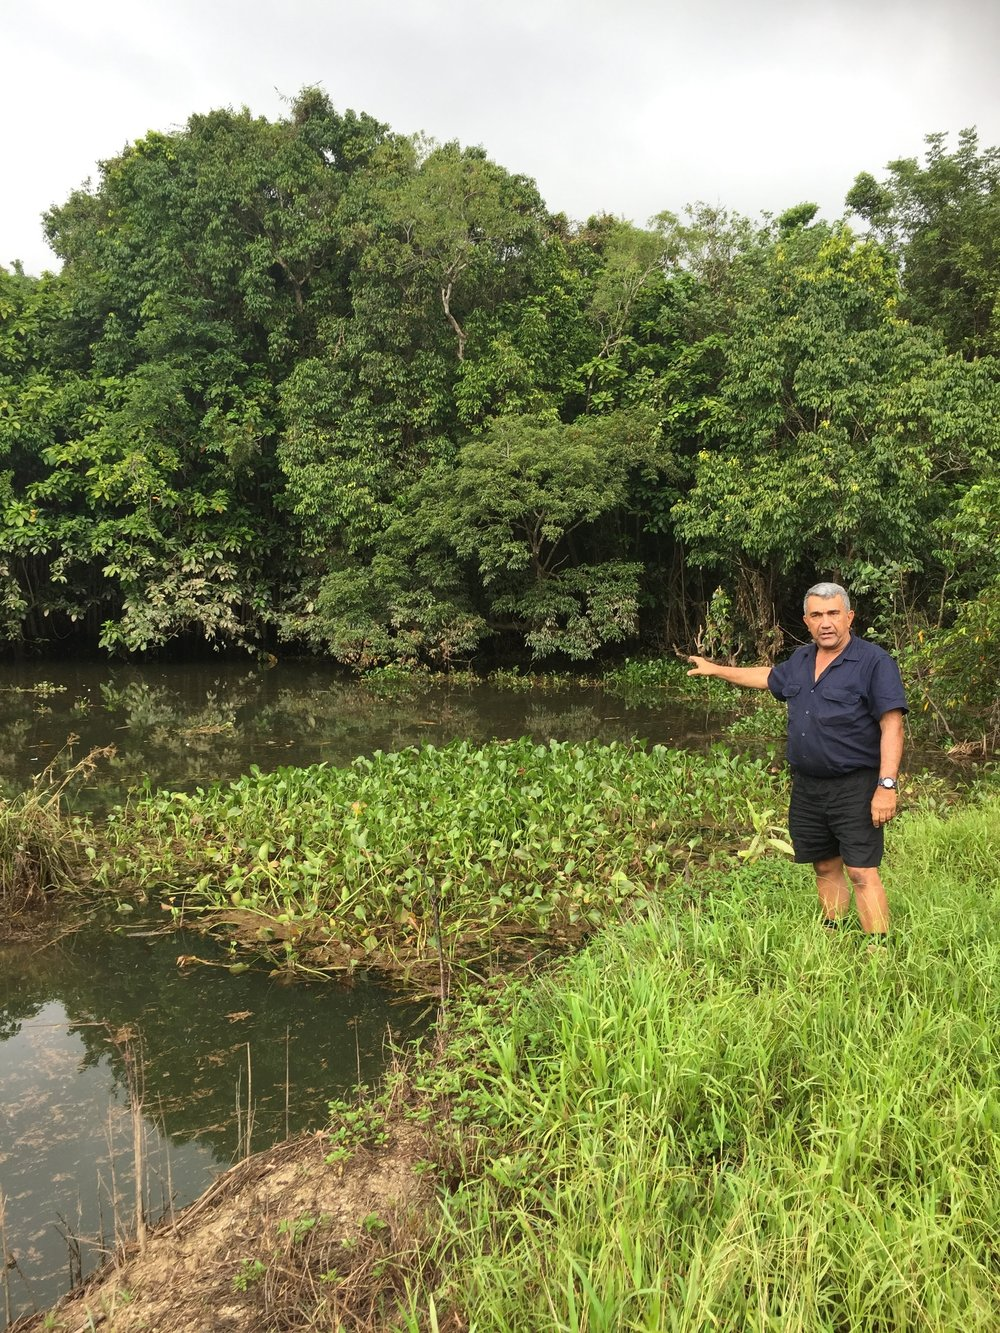 Lenny Parisi is building lagoons on his property to help improve water quality flowing to the Great Barrier Reef.